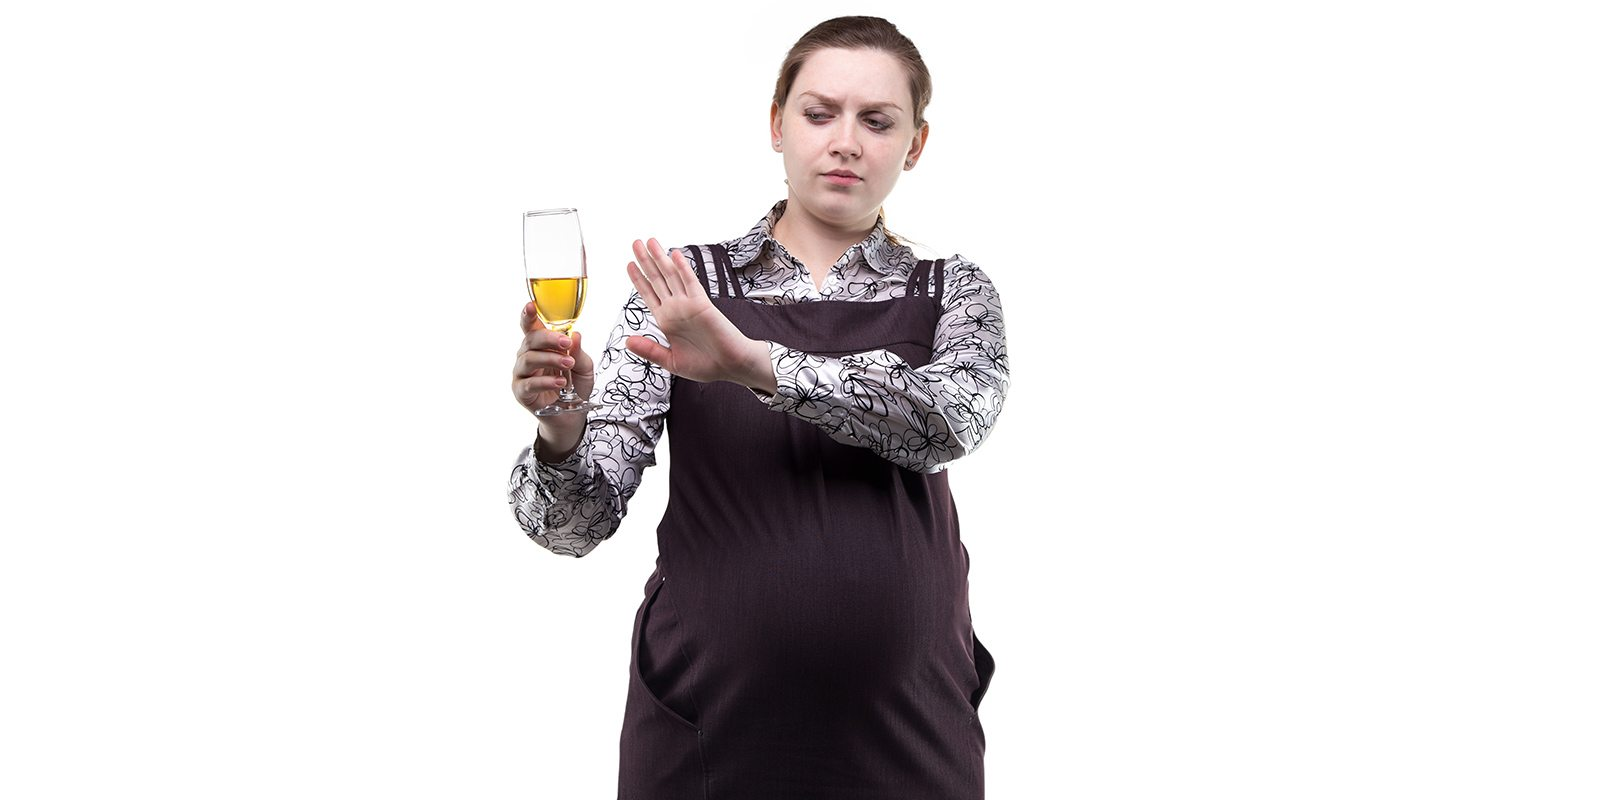 Pregnant-Woman-Refusing-Alcohol